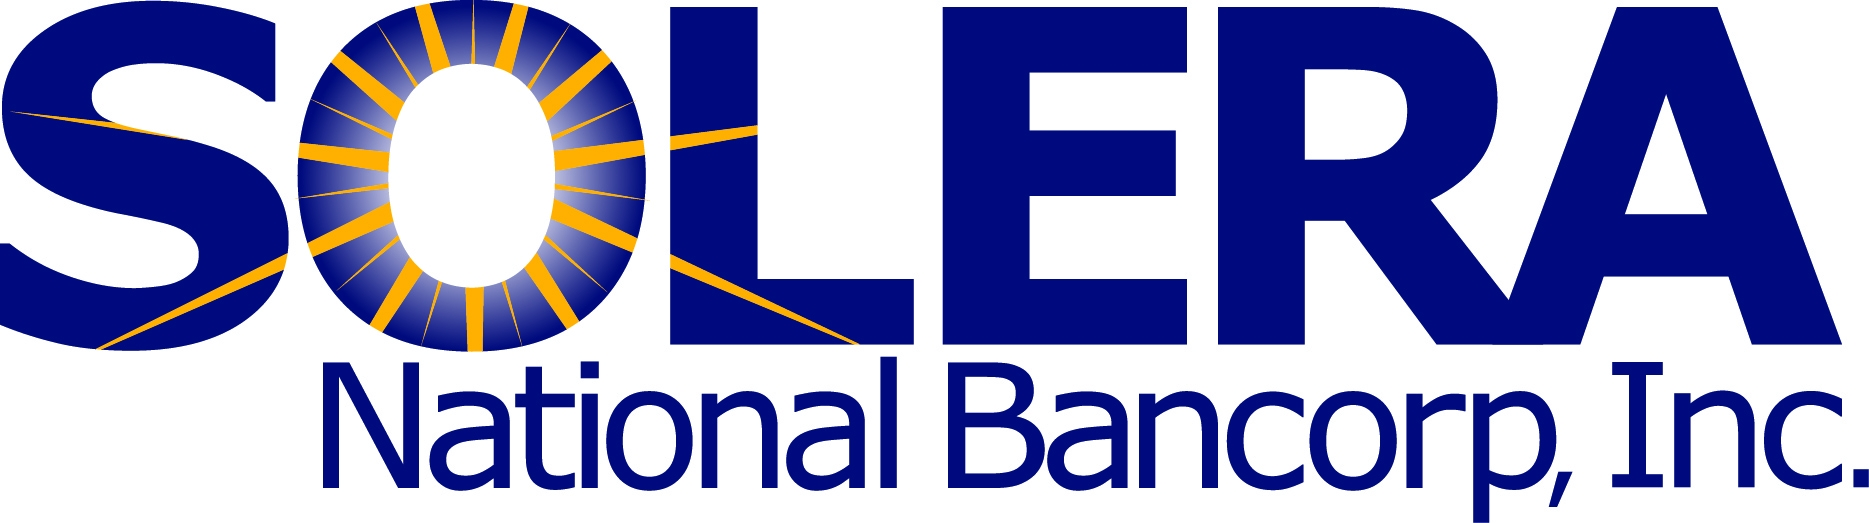 Solera National Bancorp, Inc